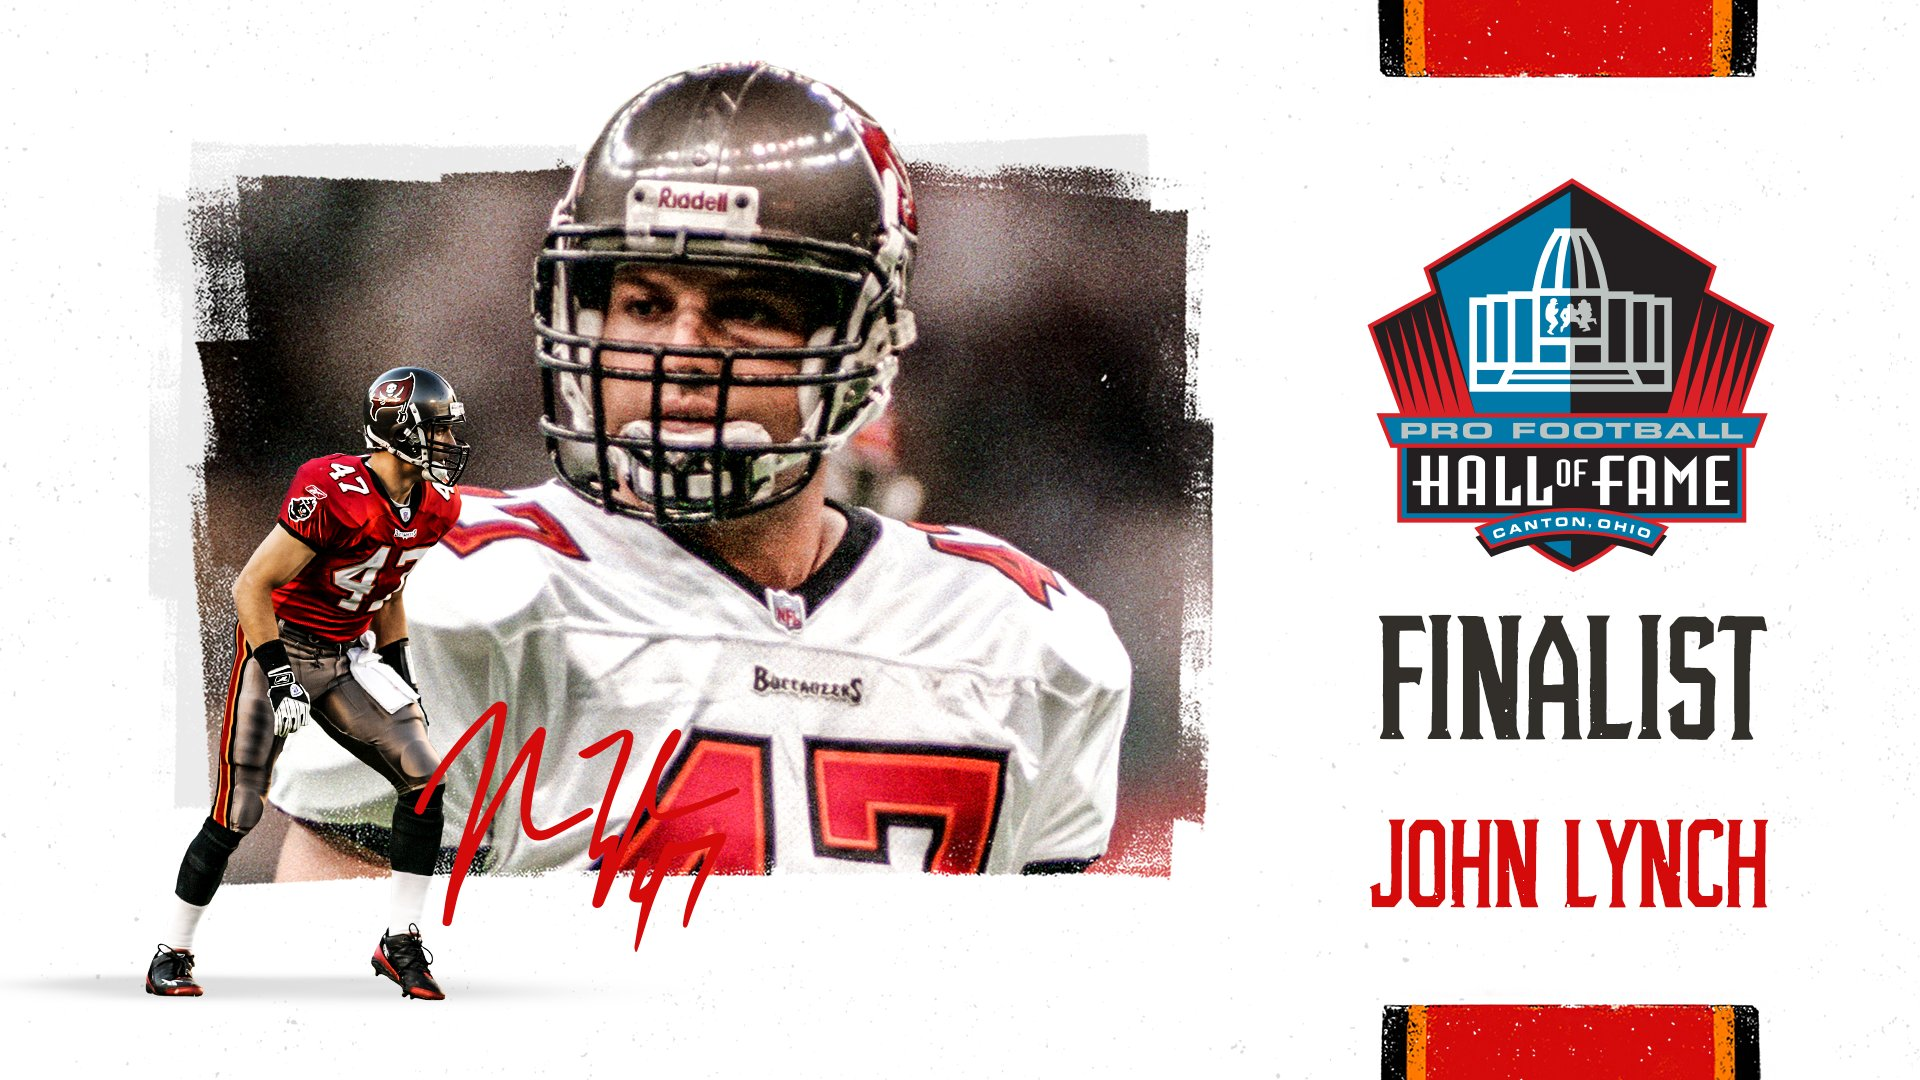 Why John Lynch belongs in the Hall of Fame